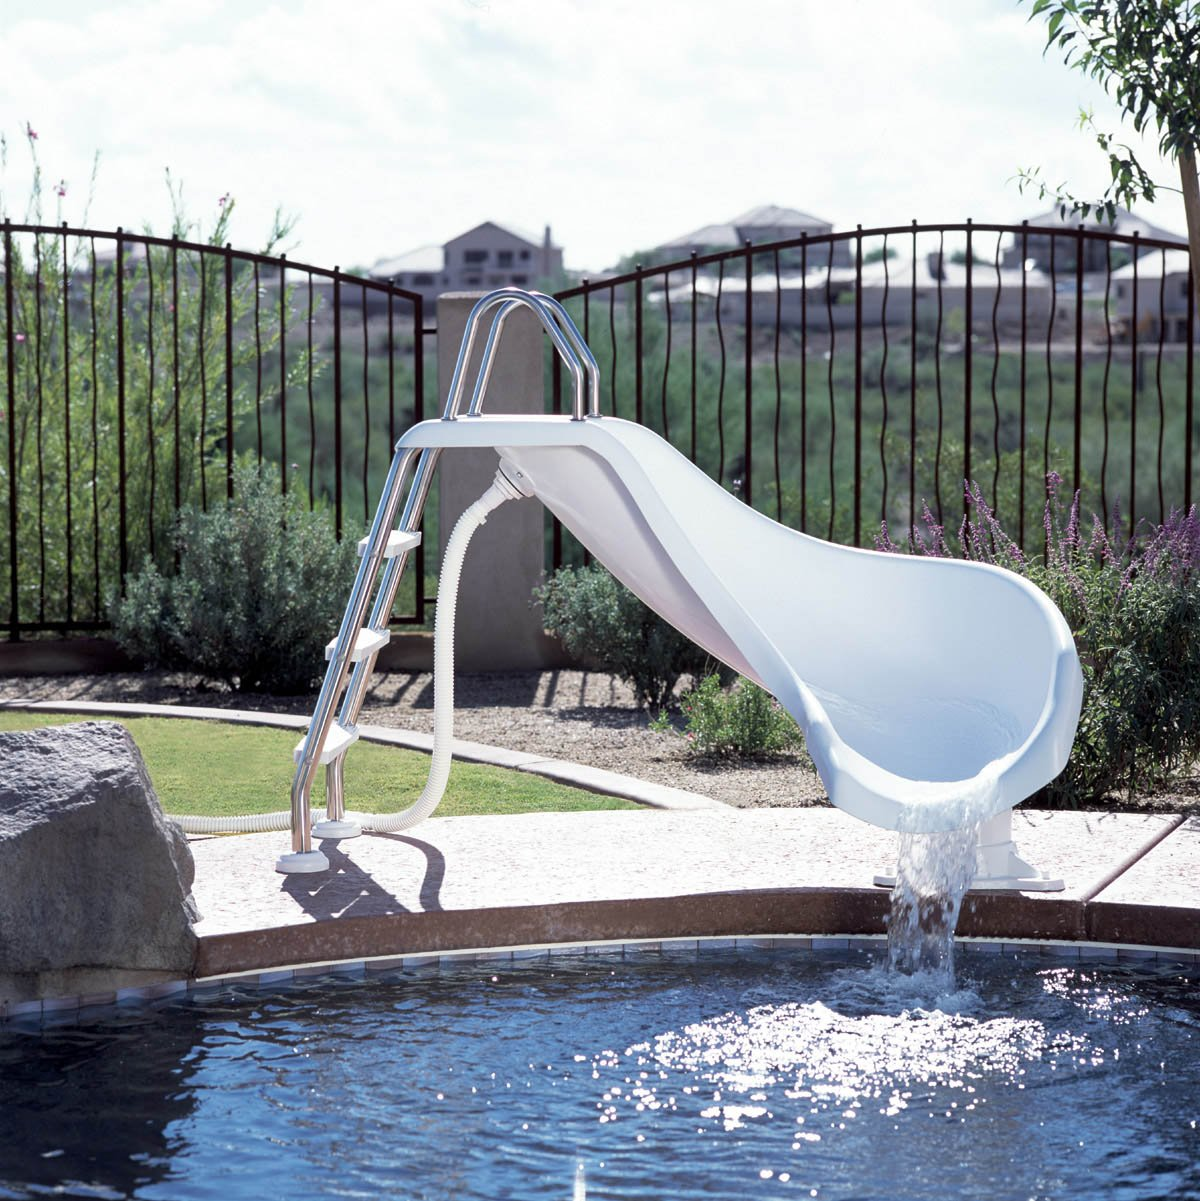 Outdoor pool with slide  Amazon.com : Inter-Fab ZM-CR-SS Water Pool Slide, Zoomerang, White ...